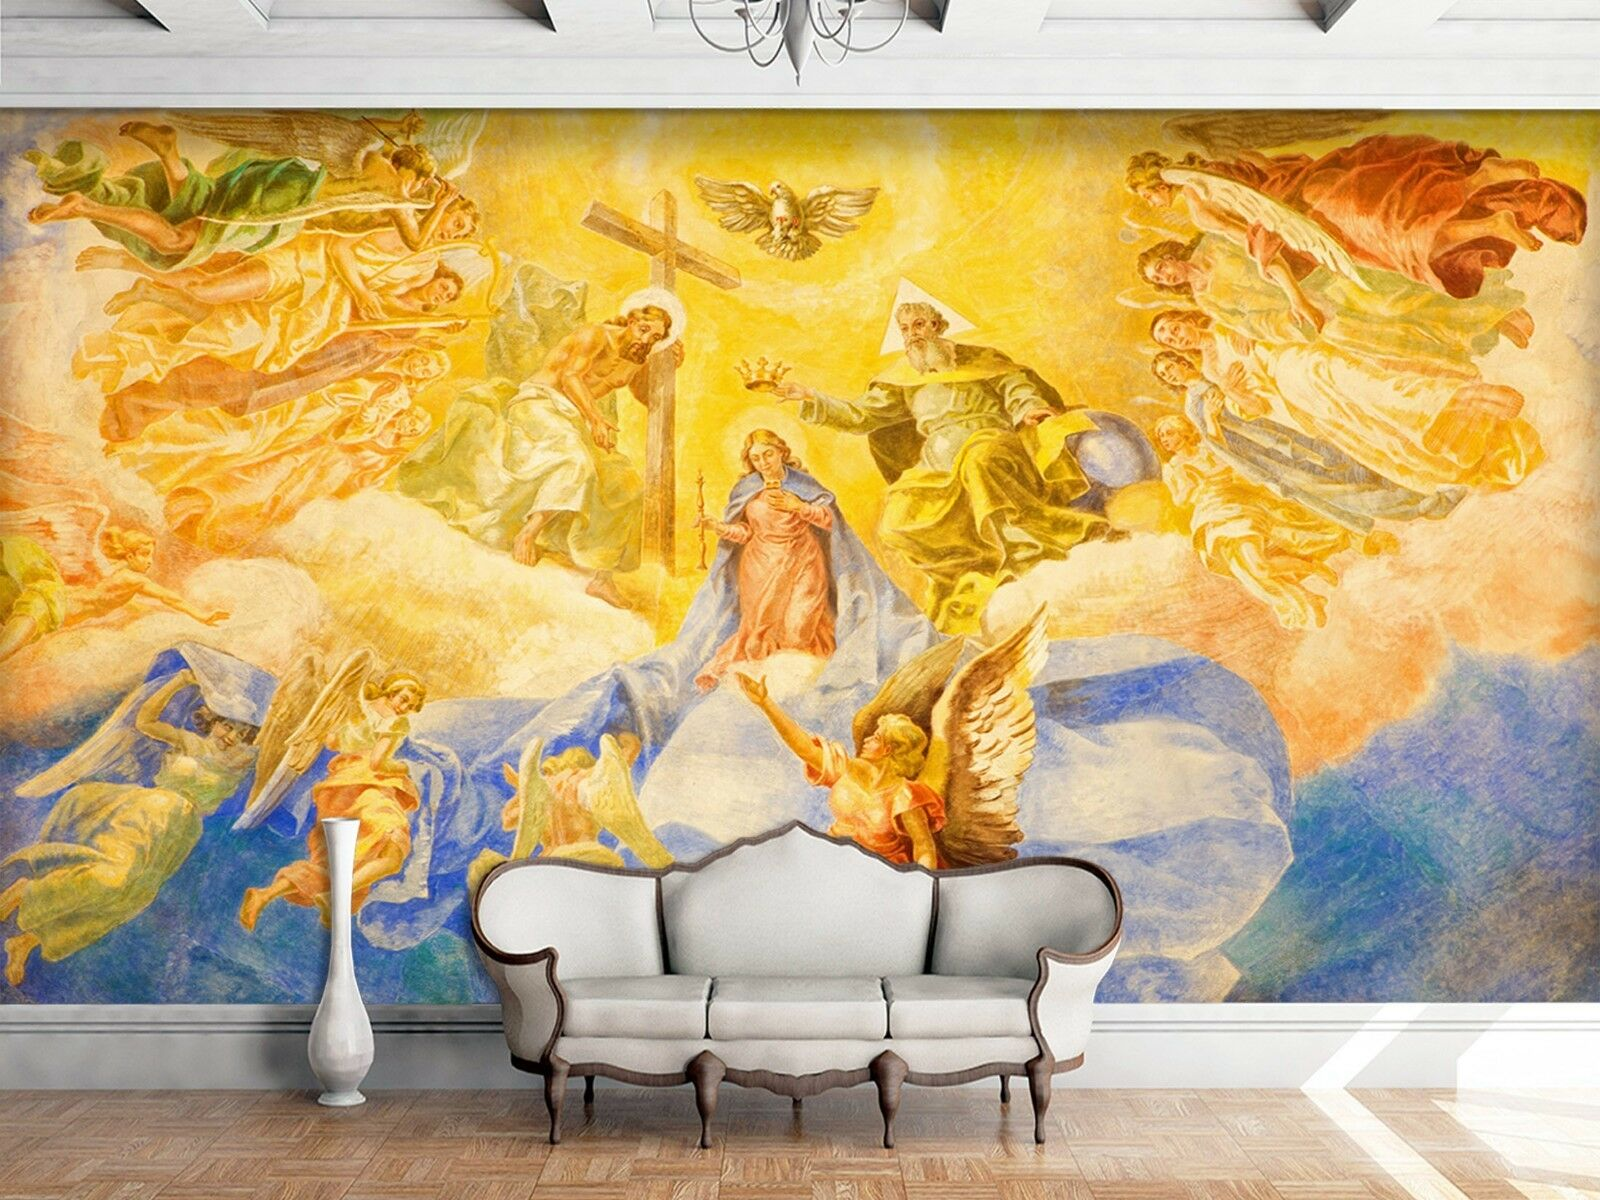 3D Splendid Heaven Painting 3 Wallpaper Mural Wall Print Decal Indoor Murals AU